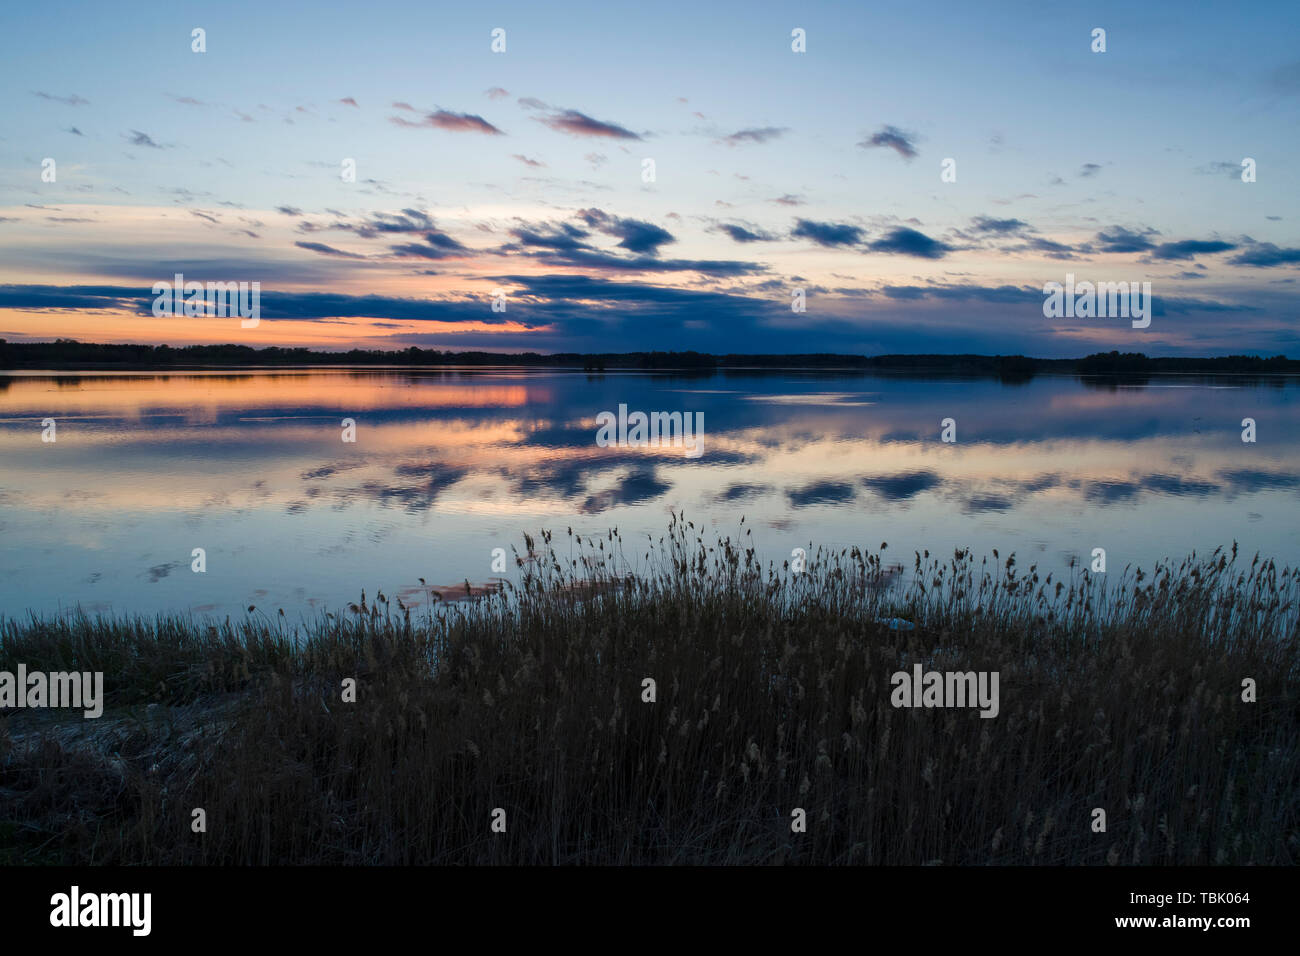 Beautiful nature and landscape photo of sunset in Katrineholm Sweden. Nice, calm and peaceful spring evening in Scandinavia. Picture shot with drone. - Stock Image